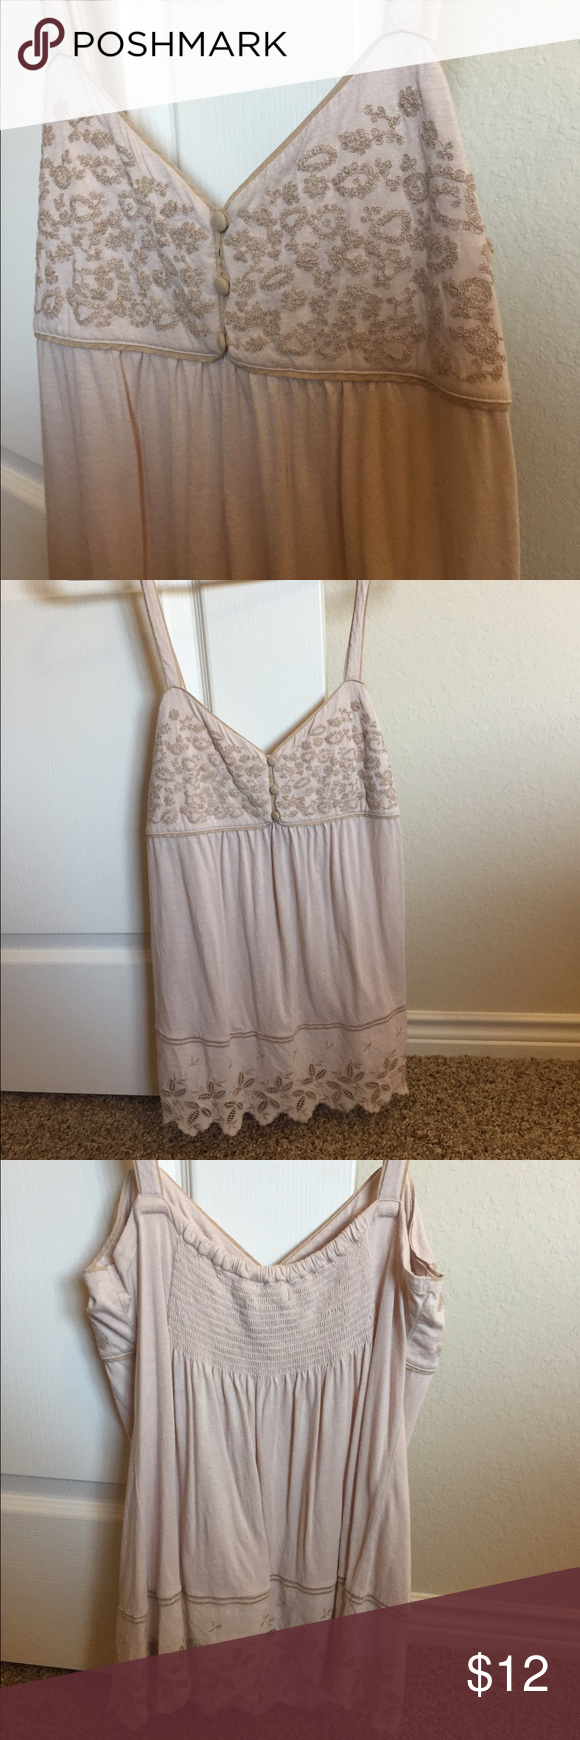 Lucky Brand detail cream spaghetti strap, size M Lucky Brand spaghetti strap, cream colored, detail at bust and lace detail at bottom. Gathered back for comfortable fit. Very comfortable and flattering. 10% off all bundles of two or more! Lucky Brand Tops Blouses